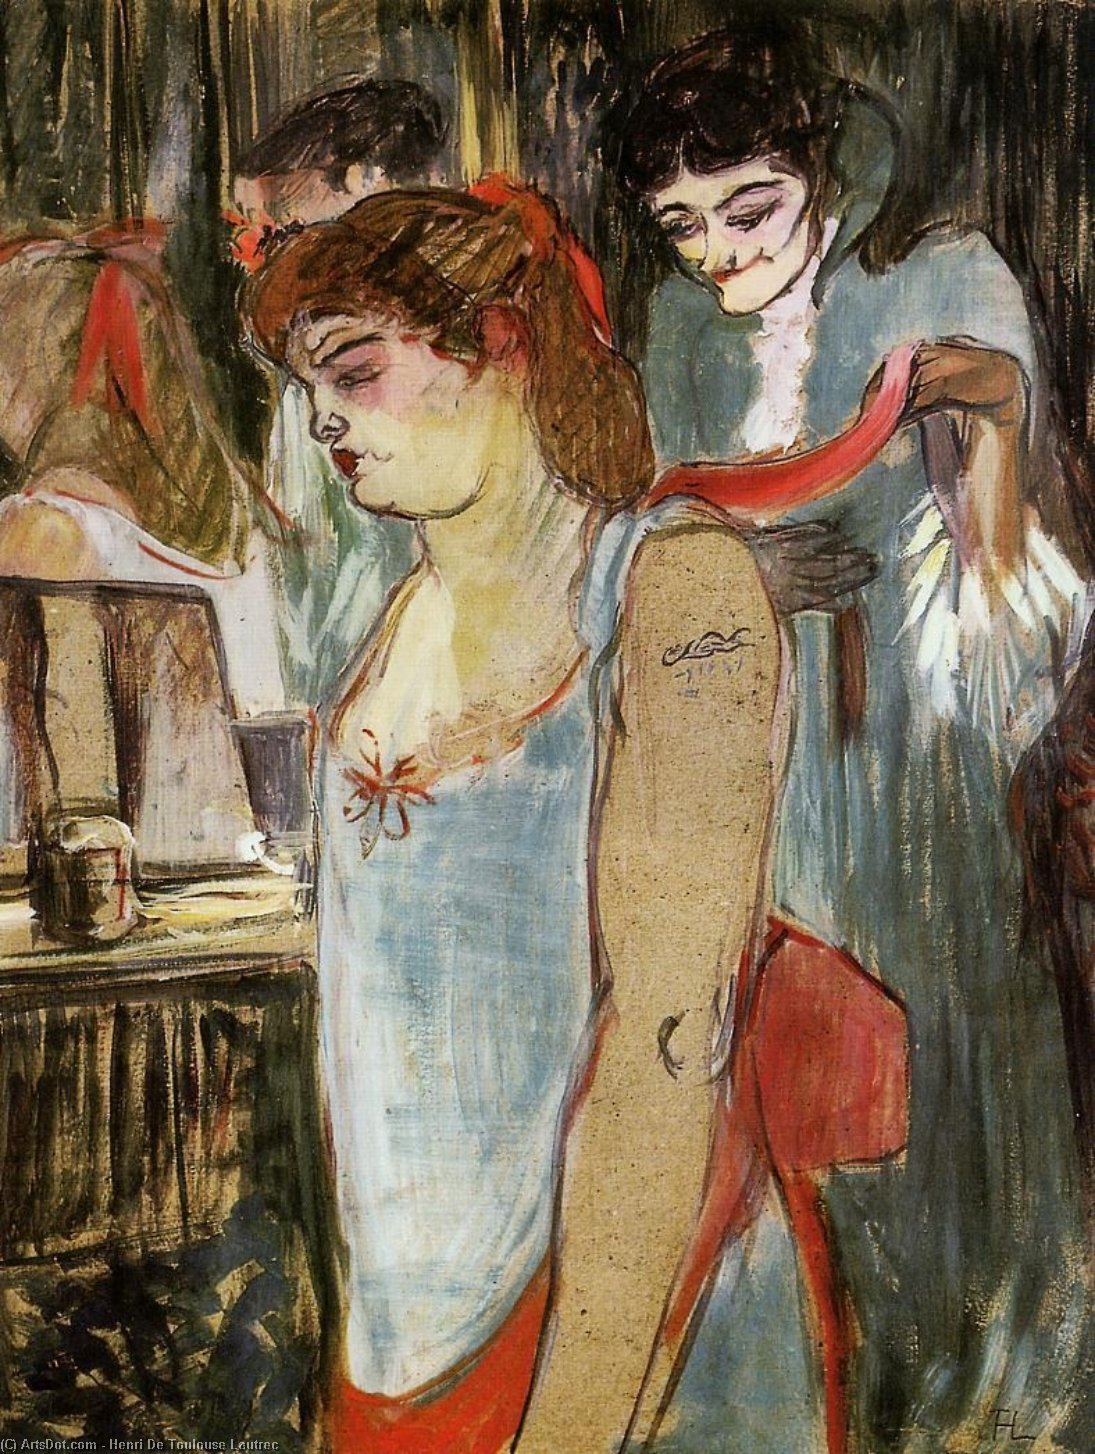 The Tatooed Woman, Oil by Henri De Toulouse Lautrec (1864-1901, France)